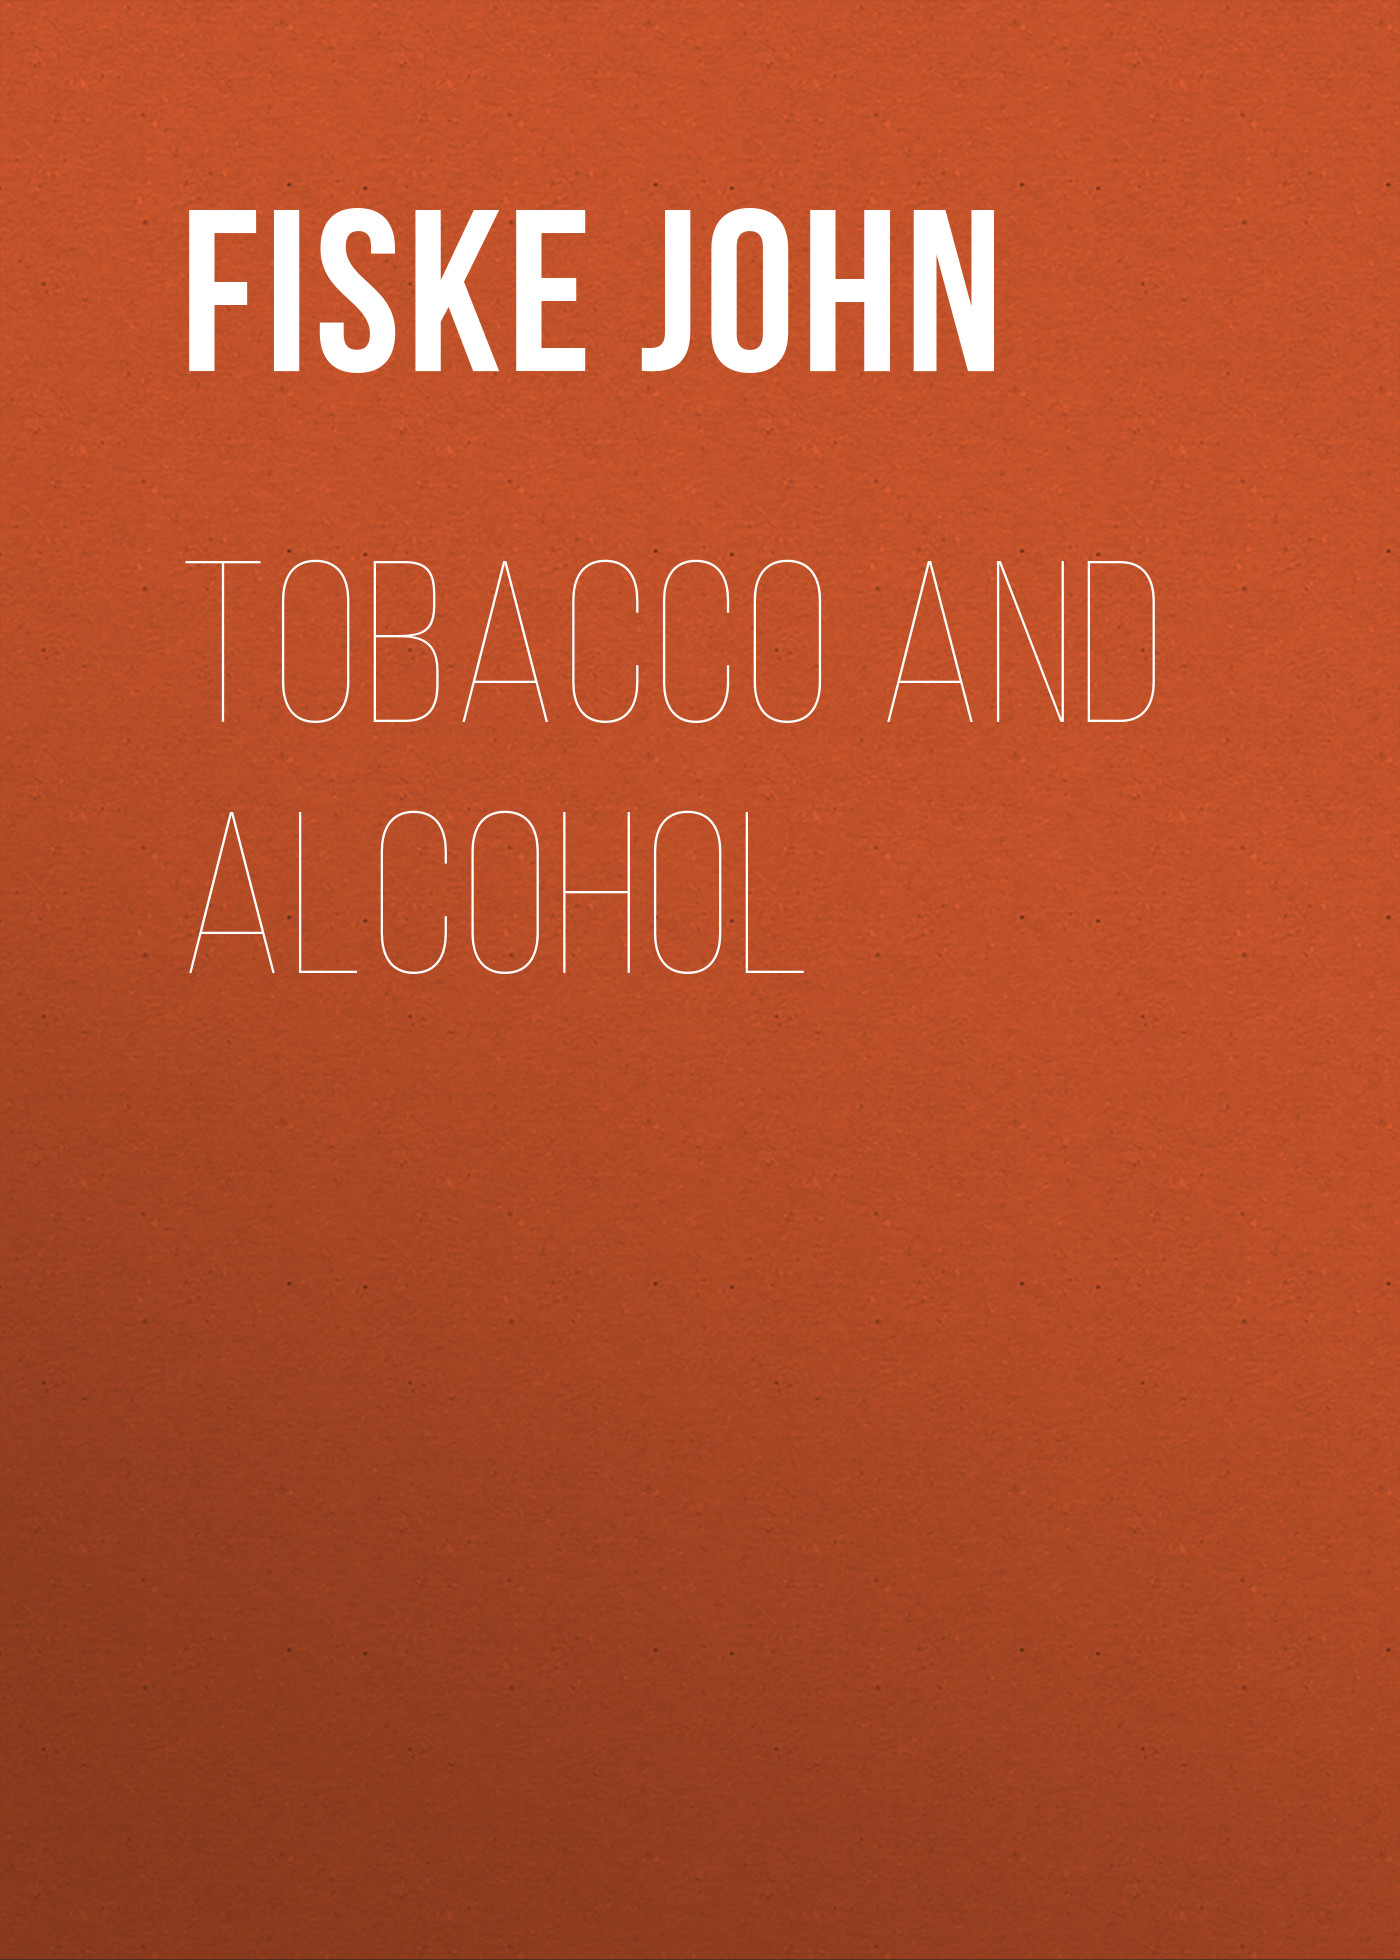 Fiske John Tobacco and Alcohol fiske john tobacco and alcohol